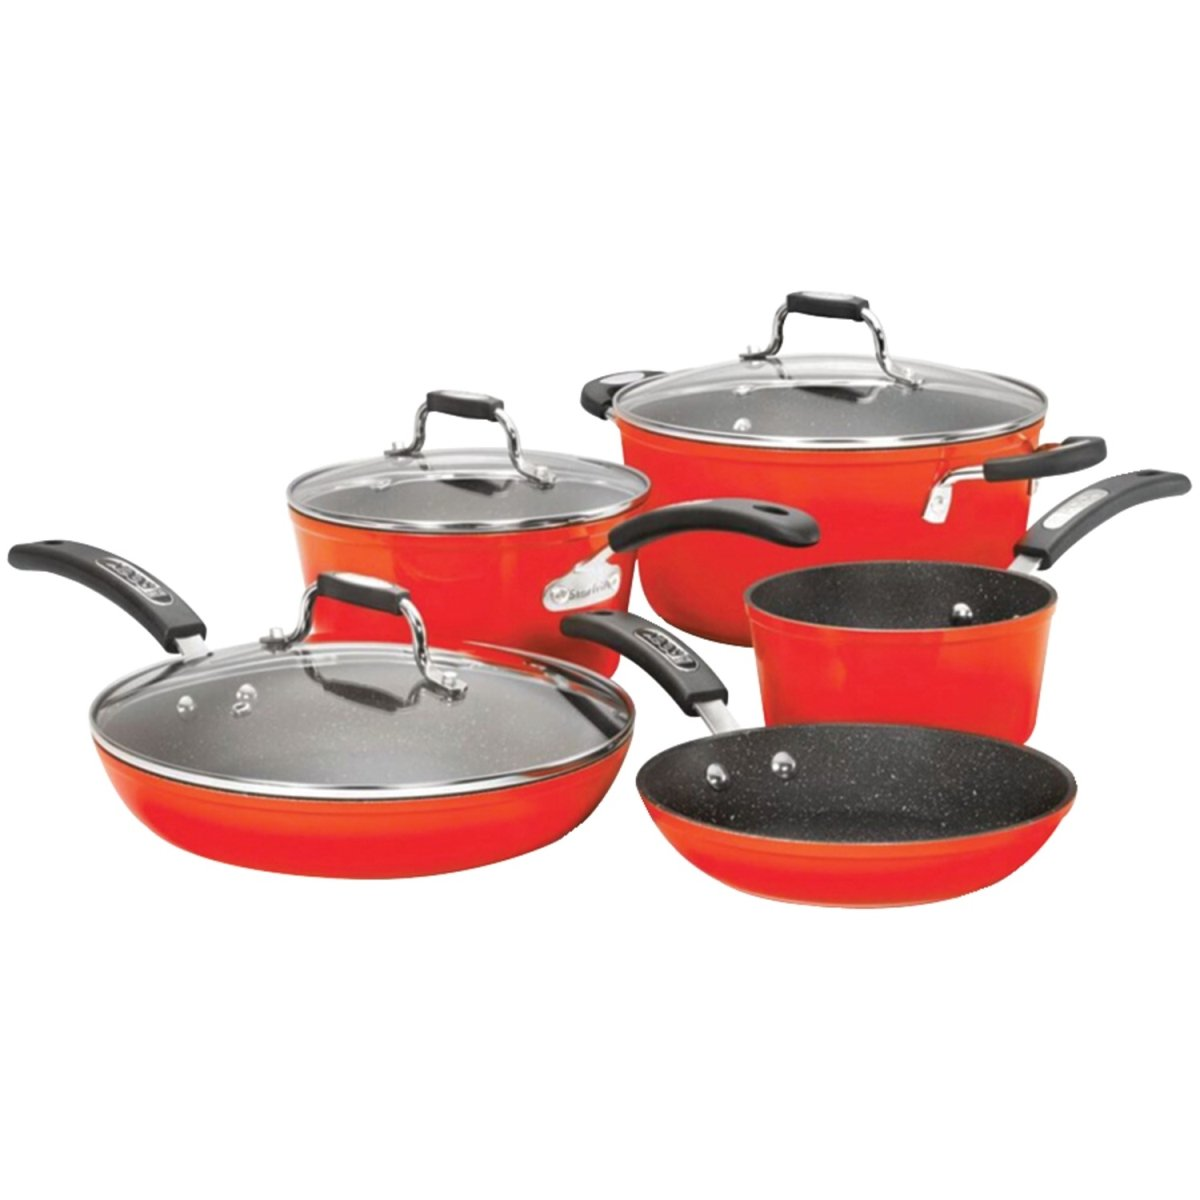 THE ROCK by Starfrit 034612-001-0000 THE ROCK(TM) by Starfrit(R) 8-Piece Cookware Set with Bakelite(R) Handles (Red)